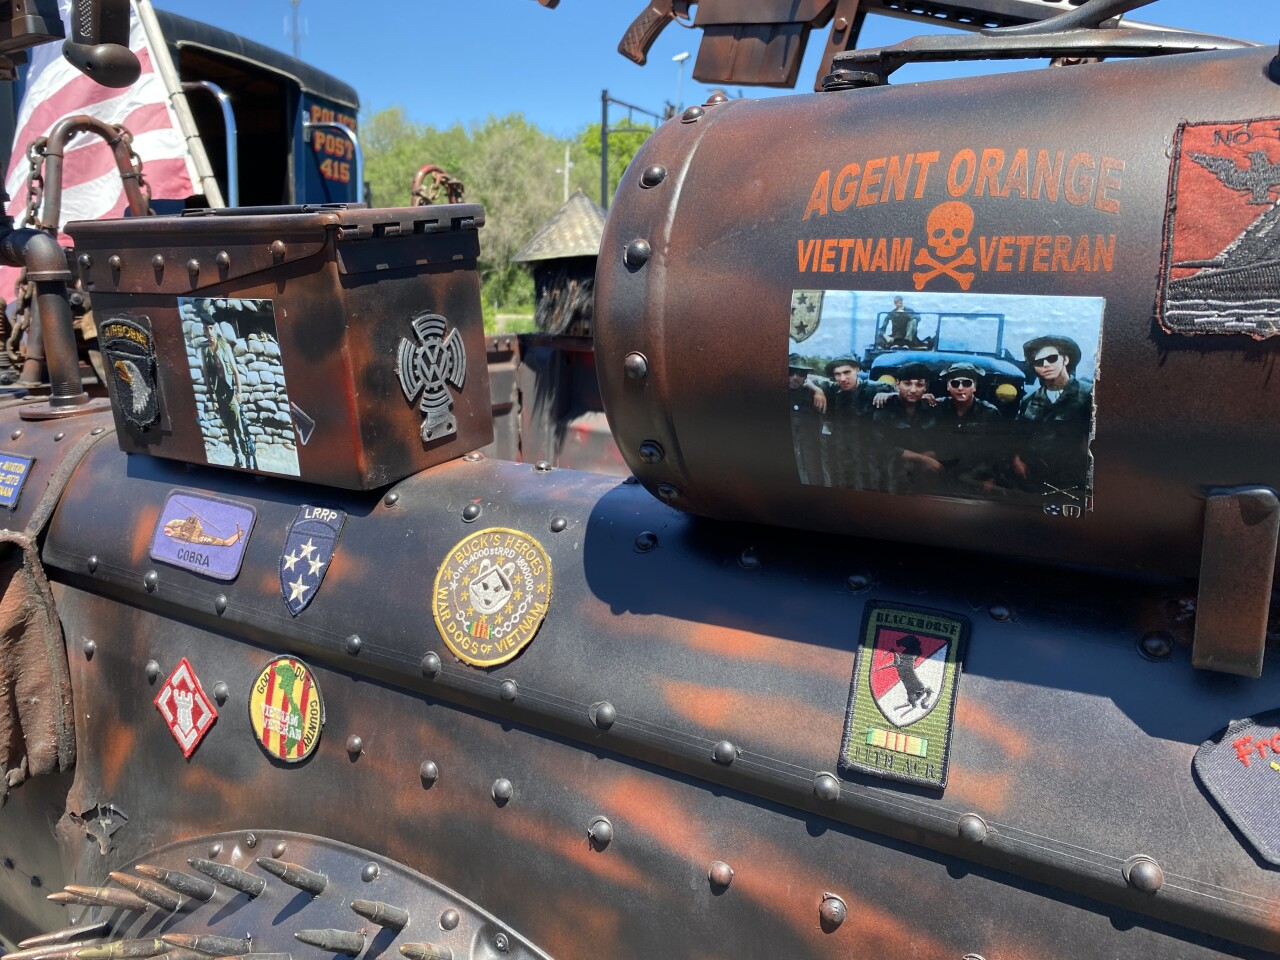 Vietnam Veteran Hector Zayas is pictured alongside of the men he served with. He decorated this truck as a way to remember them and others who lost their lives.